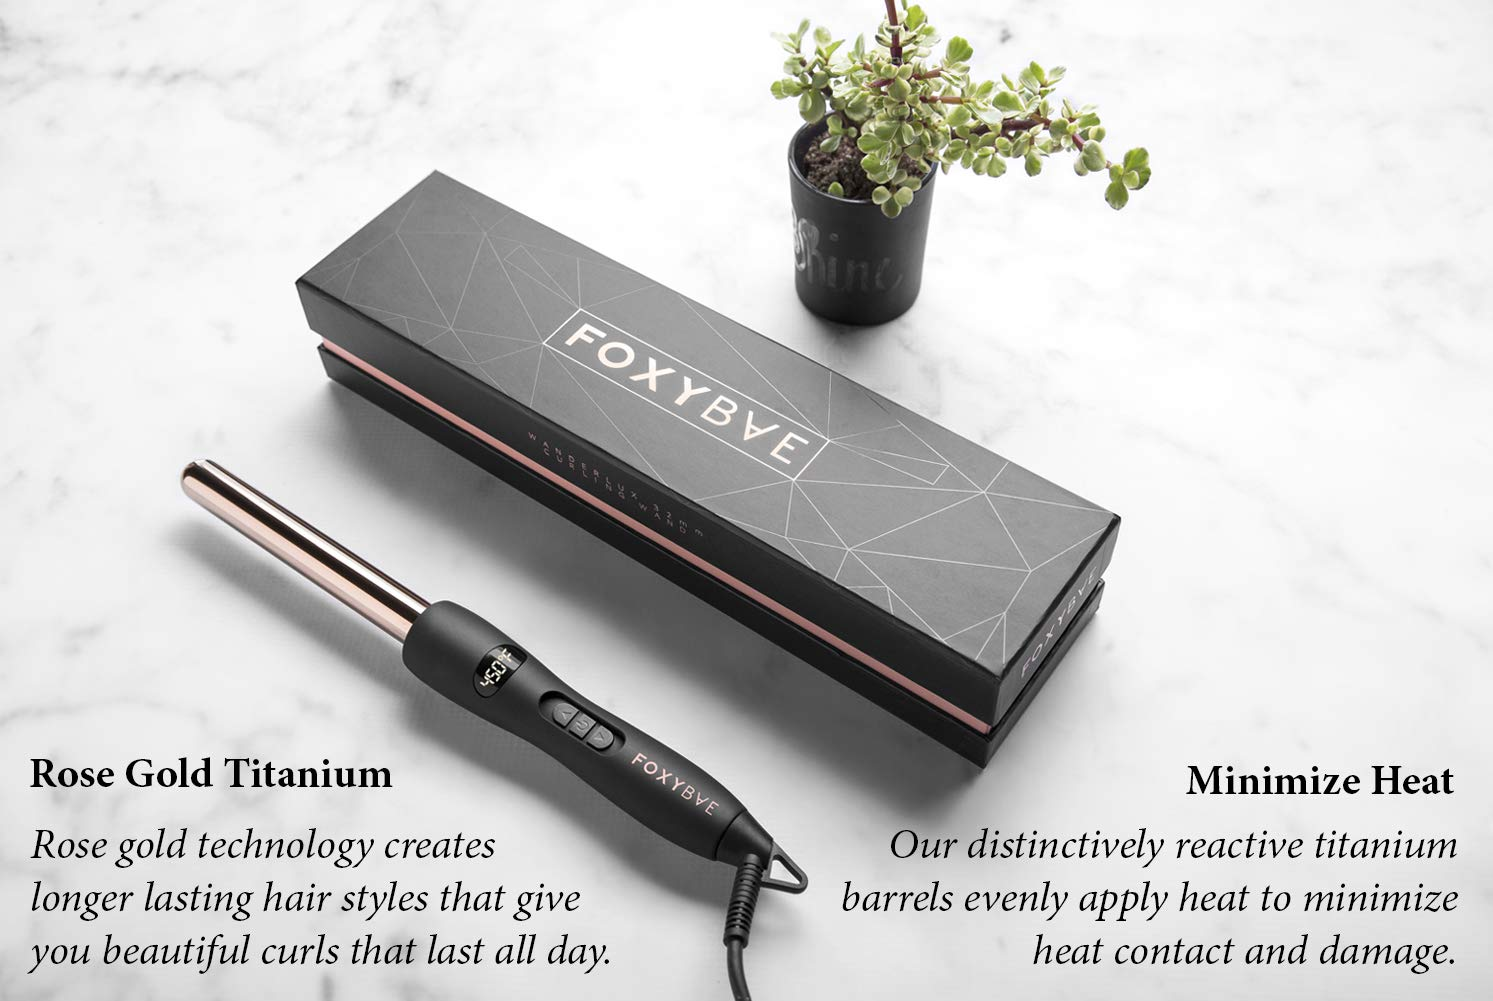 FoxyBae WANDERLUX 19mm Curling Wand – Professional Rose Gold Titanium Hair Curling Iron with Temperature Control – Auto Shut Off, LCD Display – Salon Grade Curls Waves Hair Styling